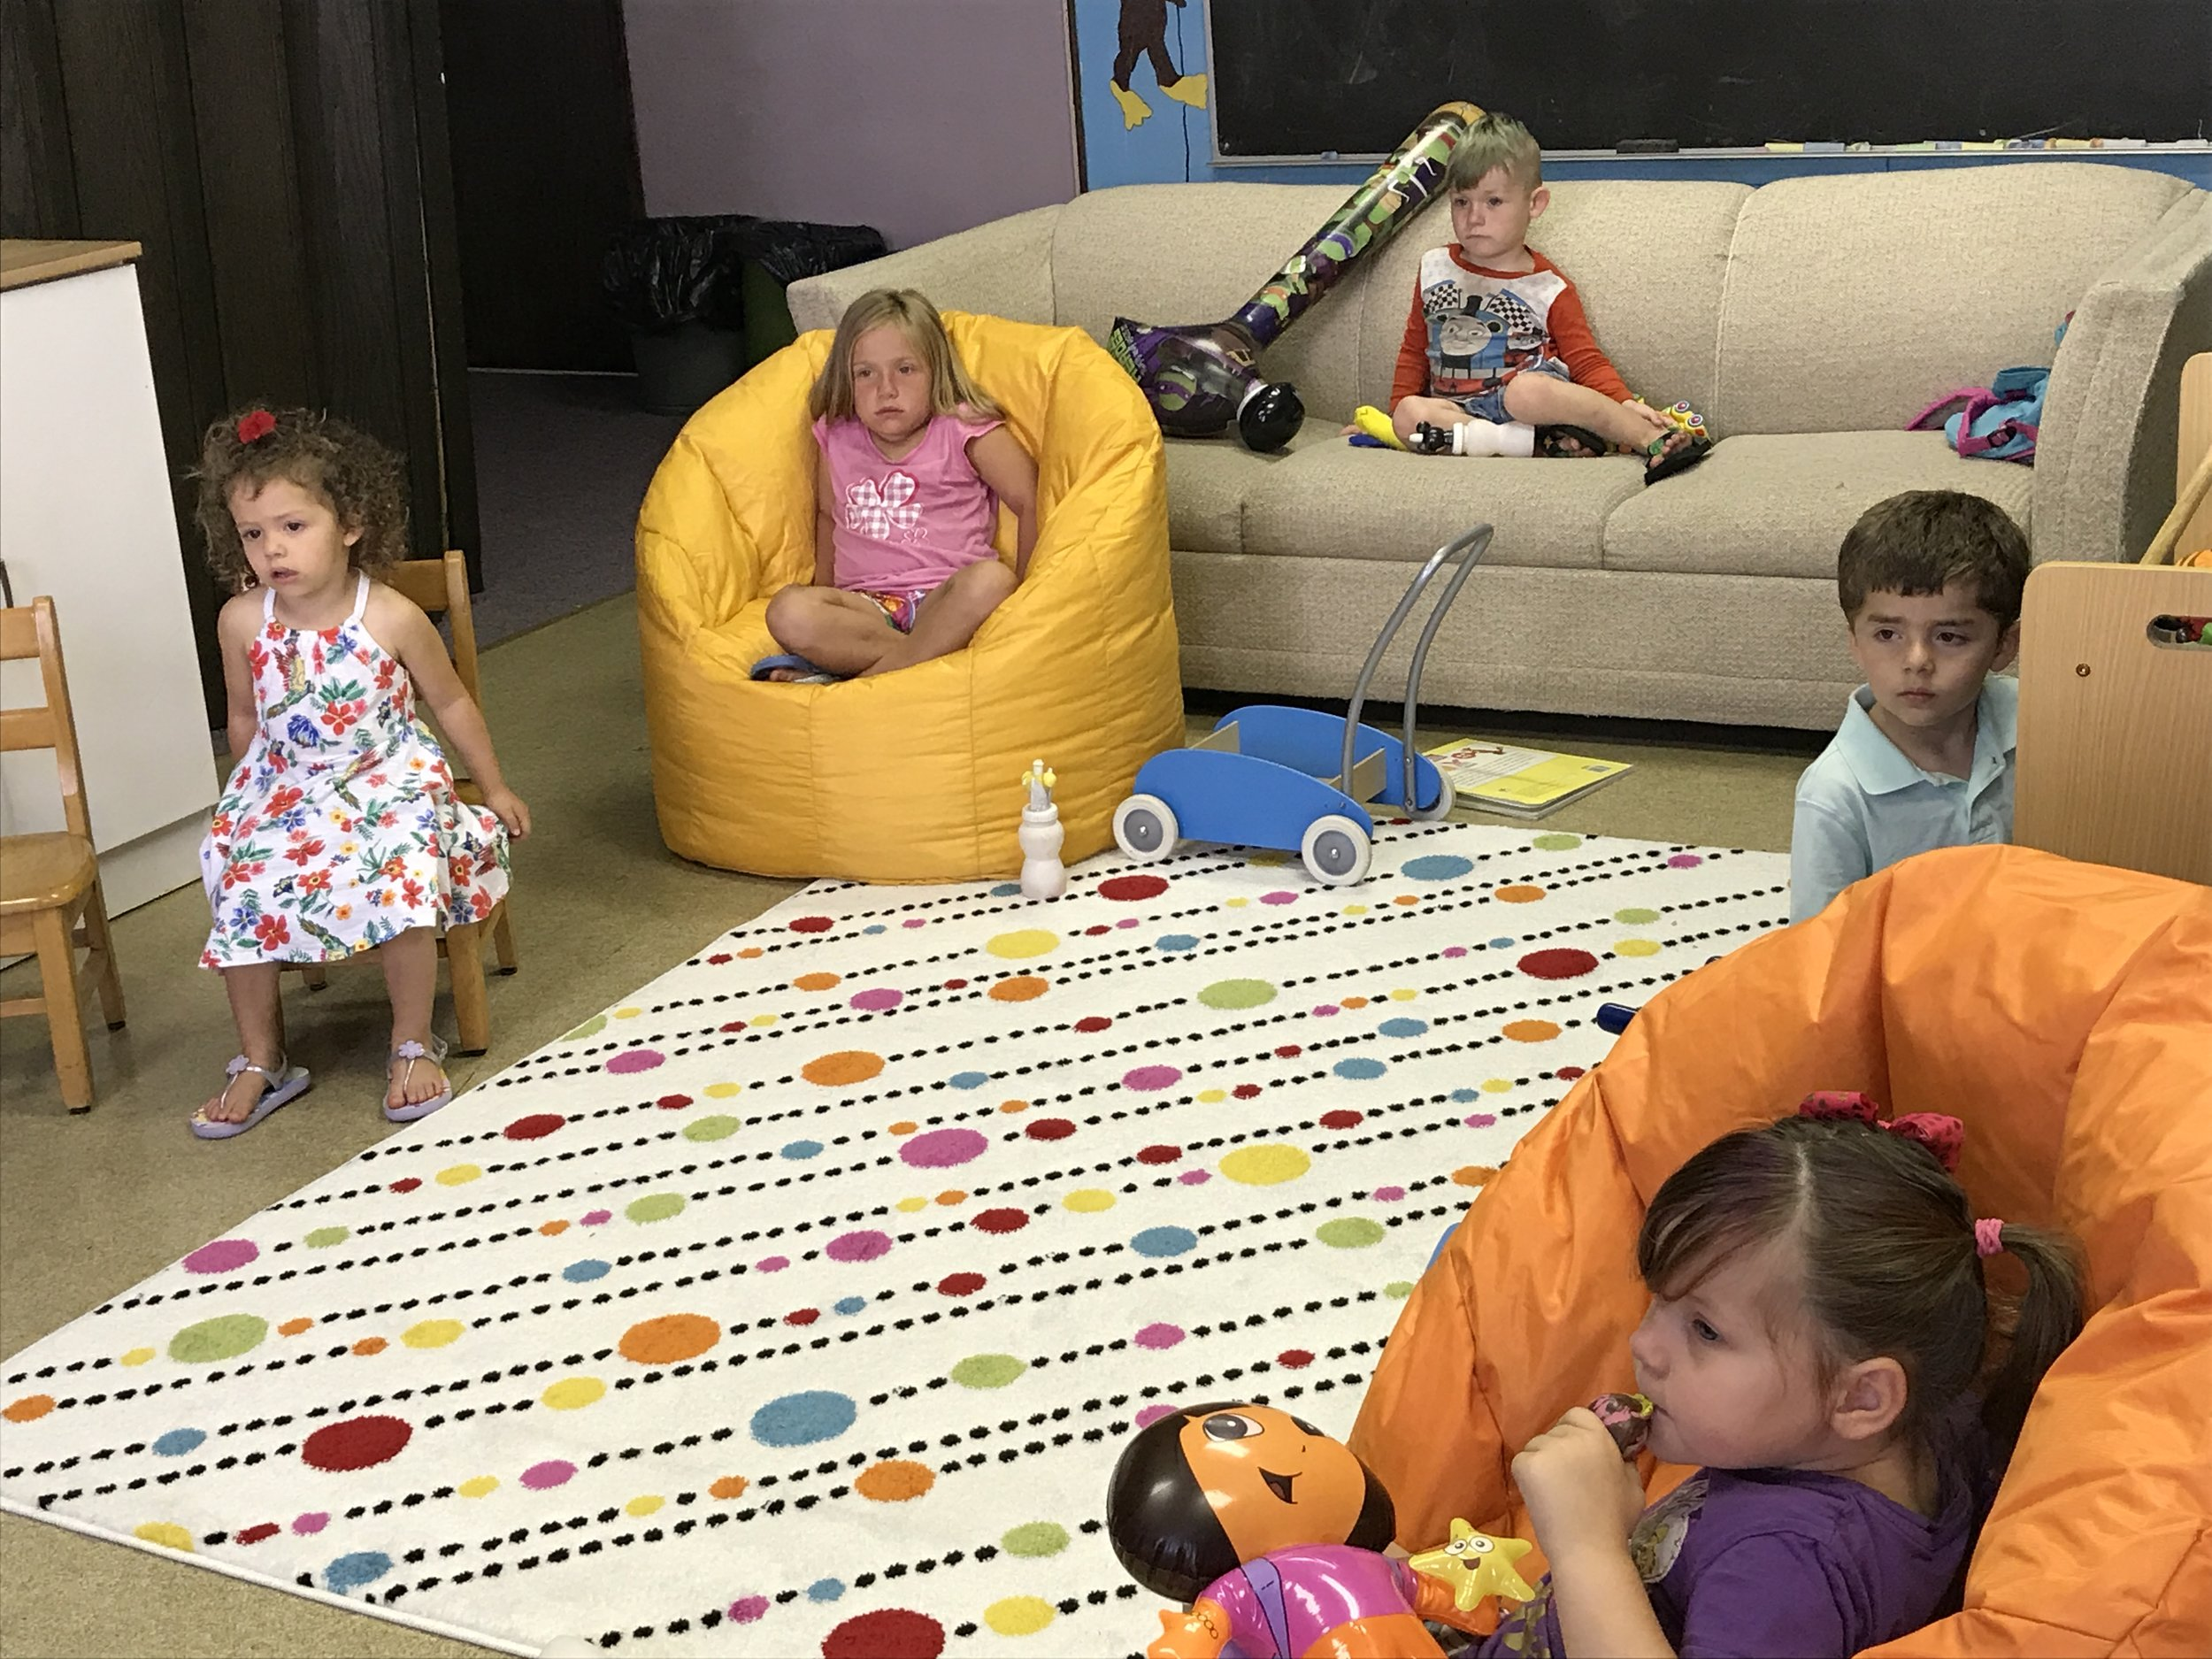 Nursery - We are in prayerful search of a childcare provider who can lovingly supervise our littlest during Sunday morning worship. Duties include offering age-appropriate games, crafts, and other activities with a view toward showing youngsters about God's love for them. Experience and certification preferred. Please call the office at 263-2177 to apply!